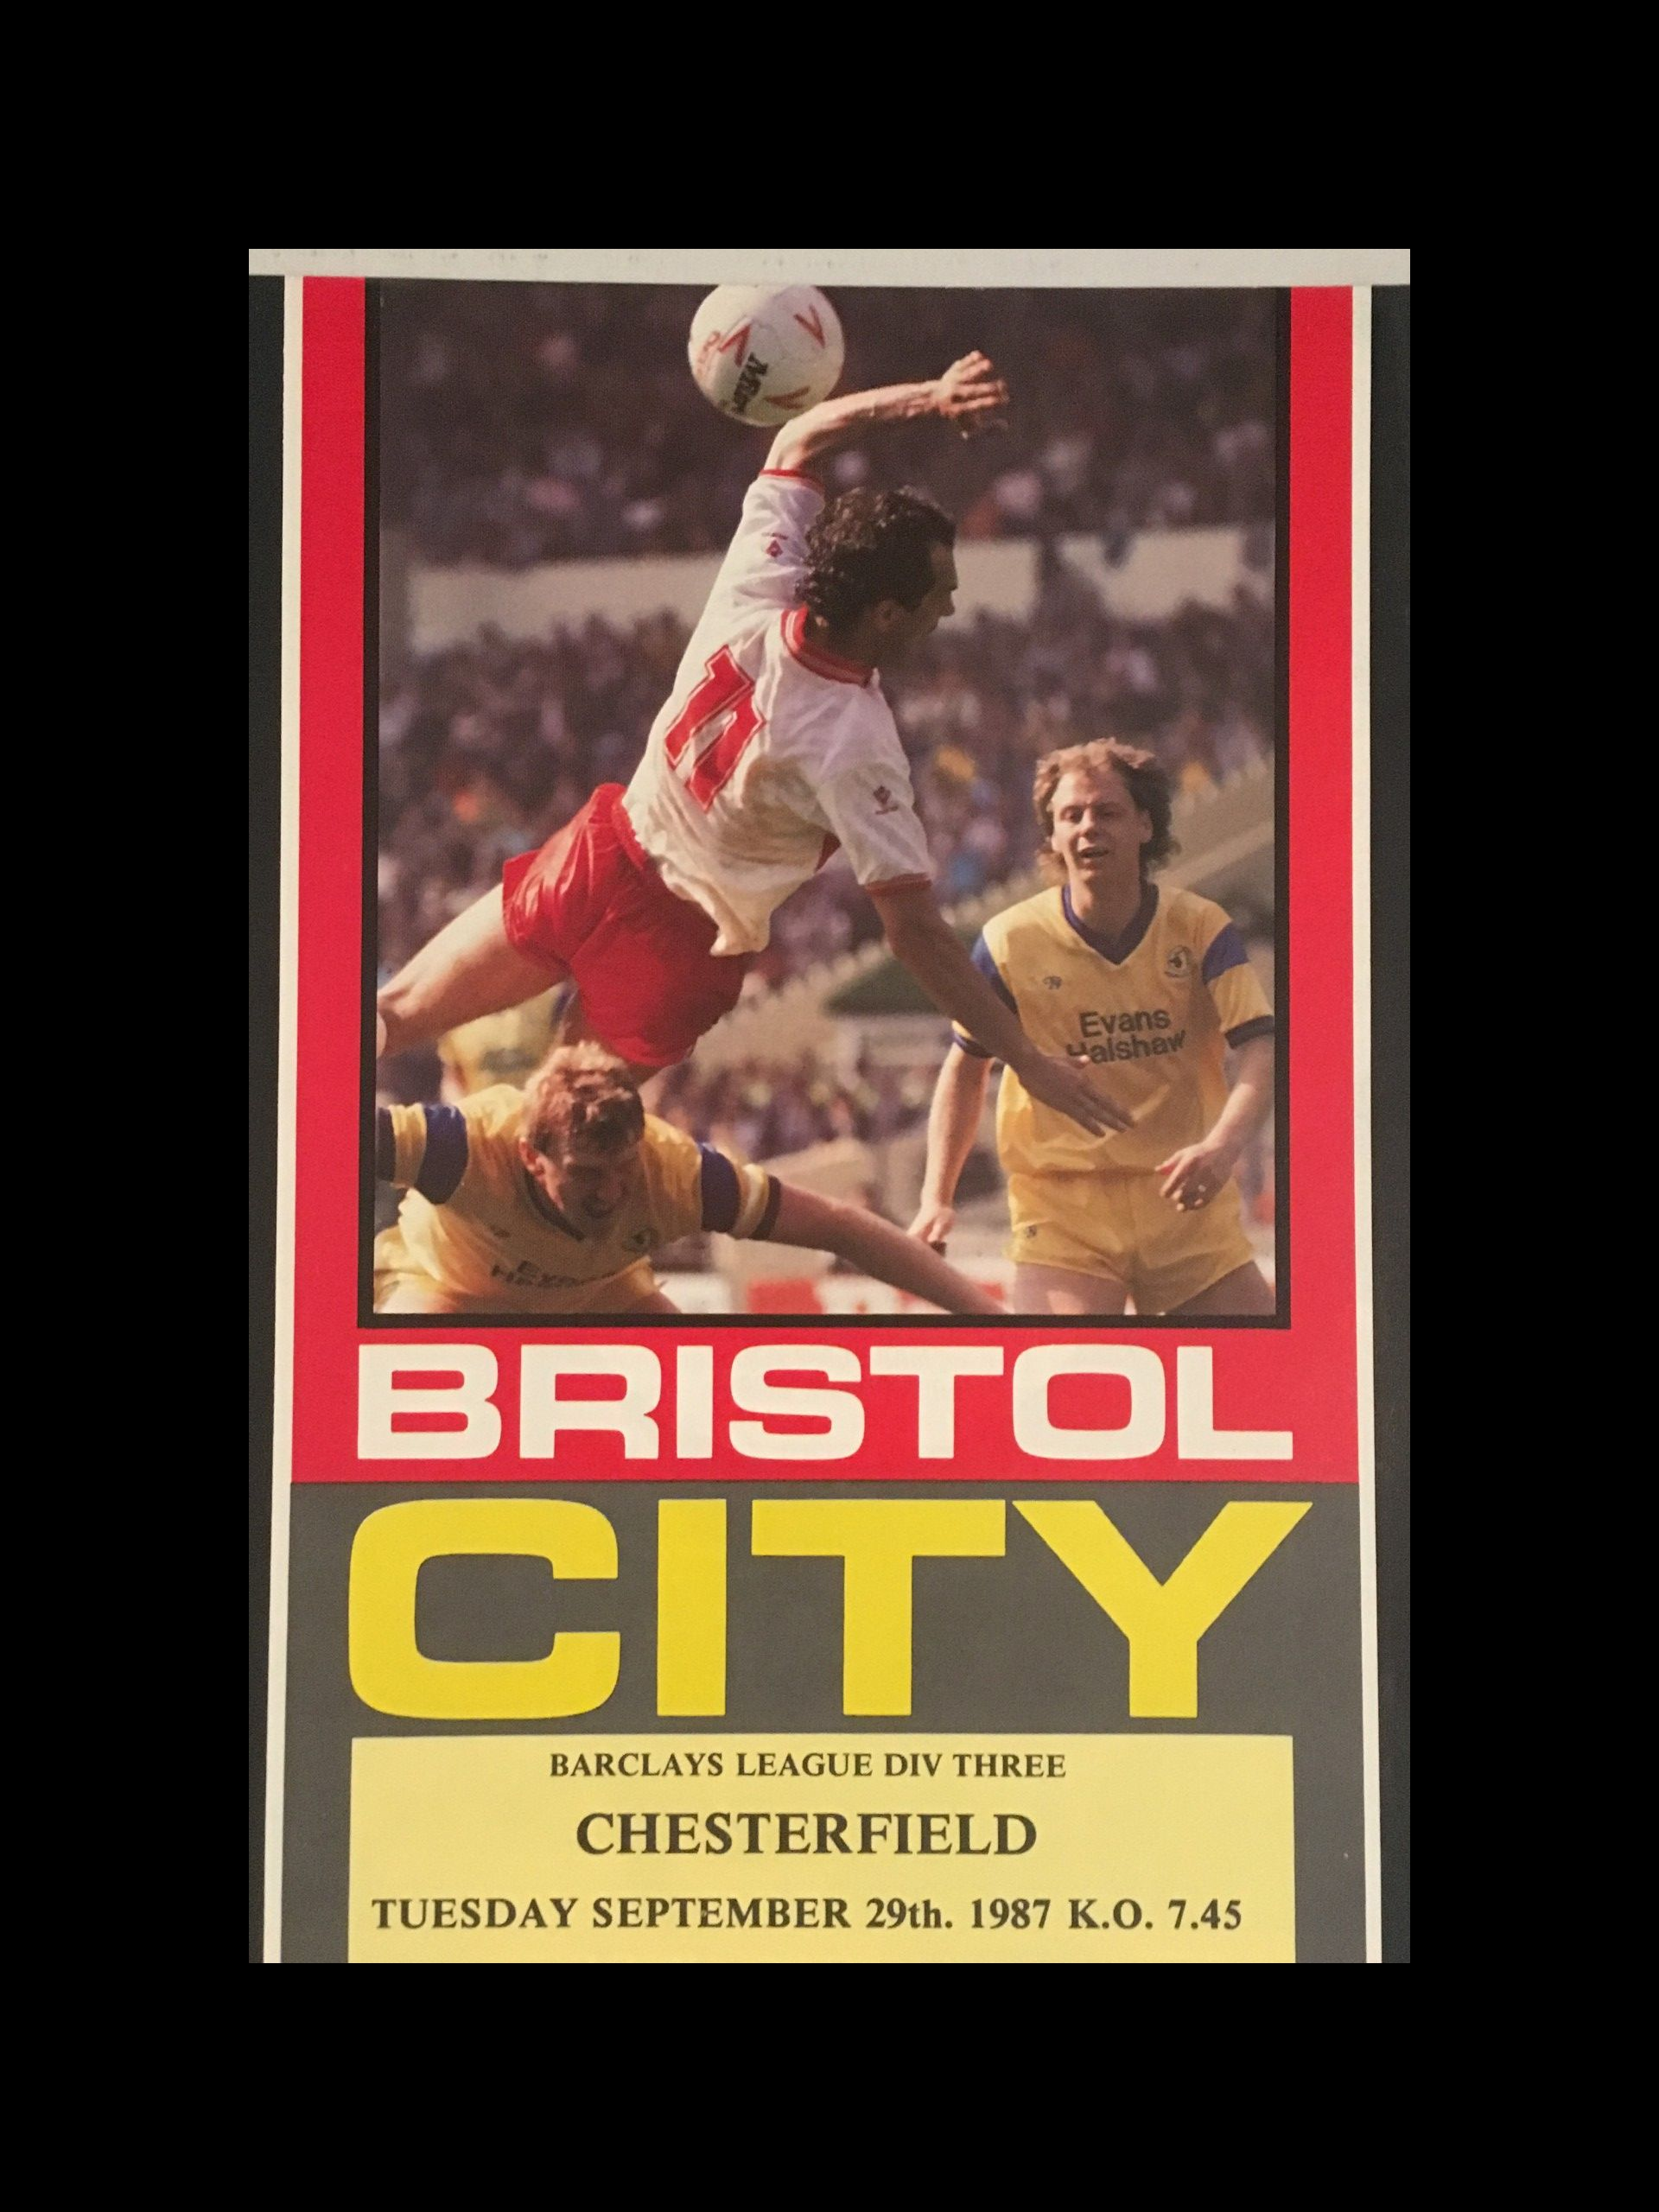 Bristol City v Chesterfield 29-09-1987 Programme